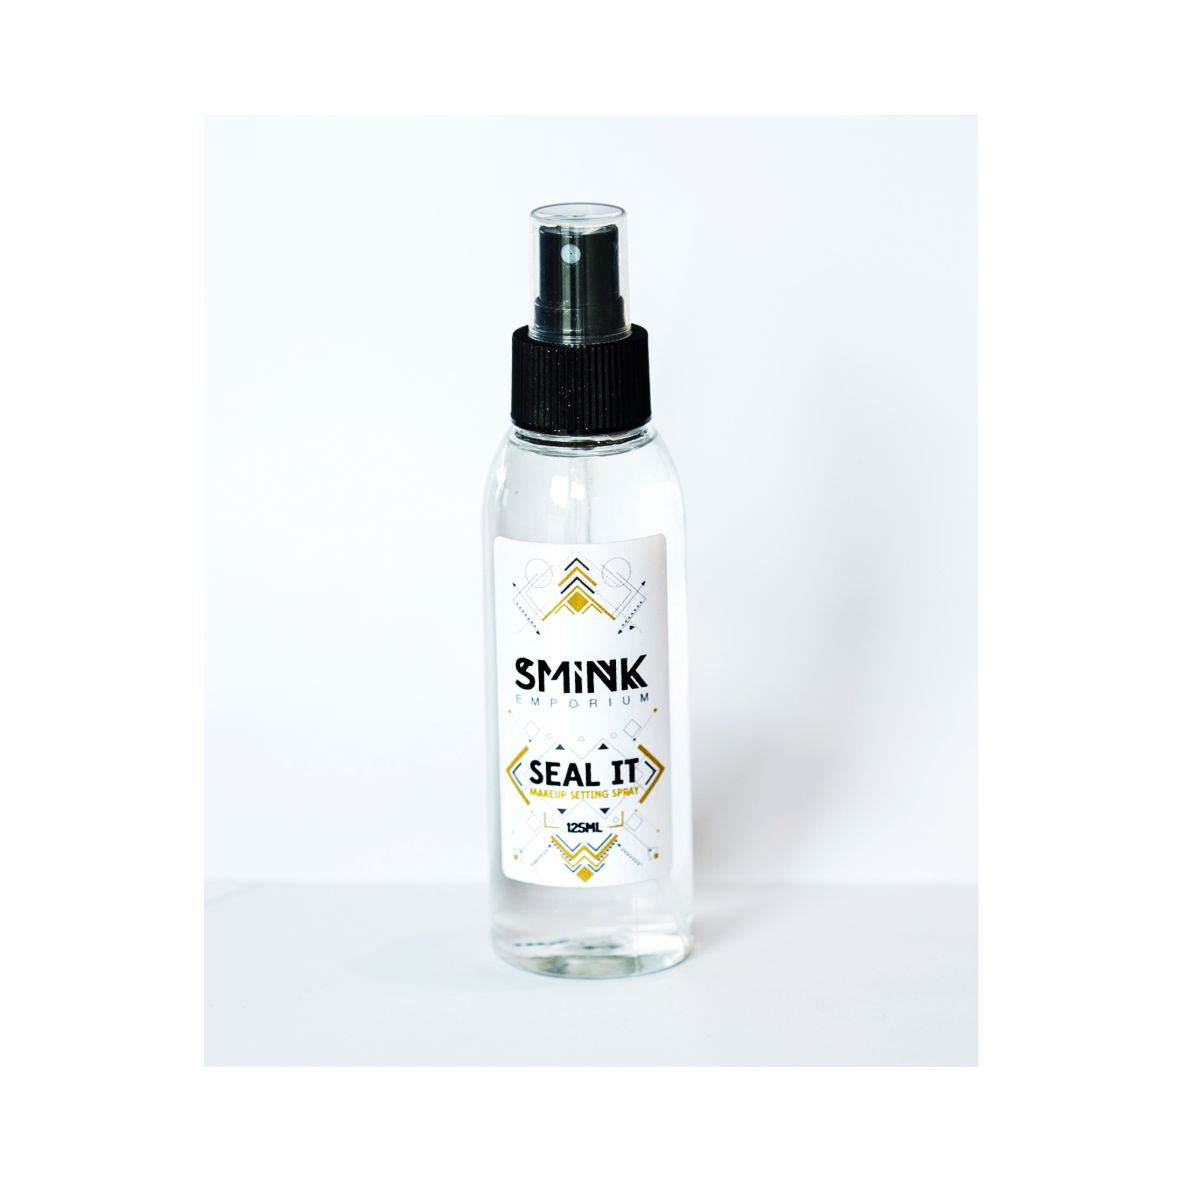 Seal It Makeup Setting Spray